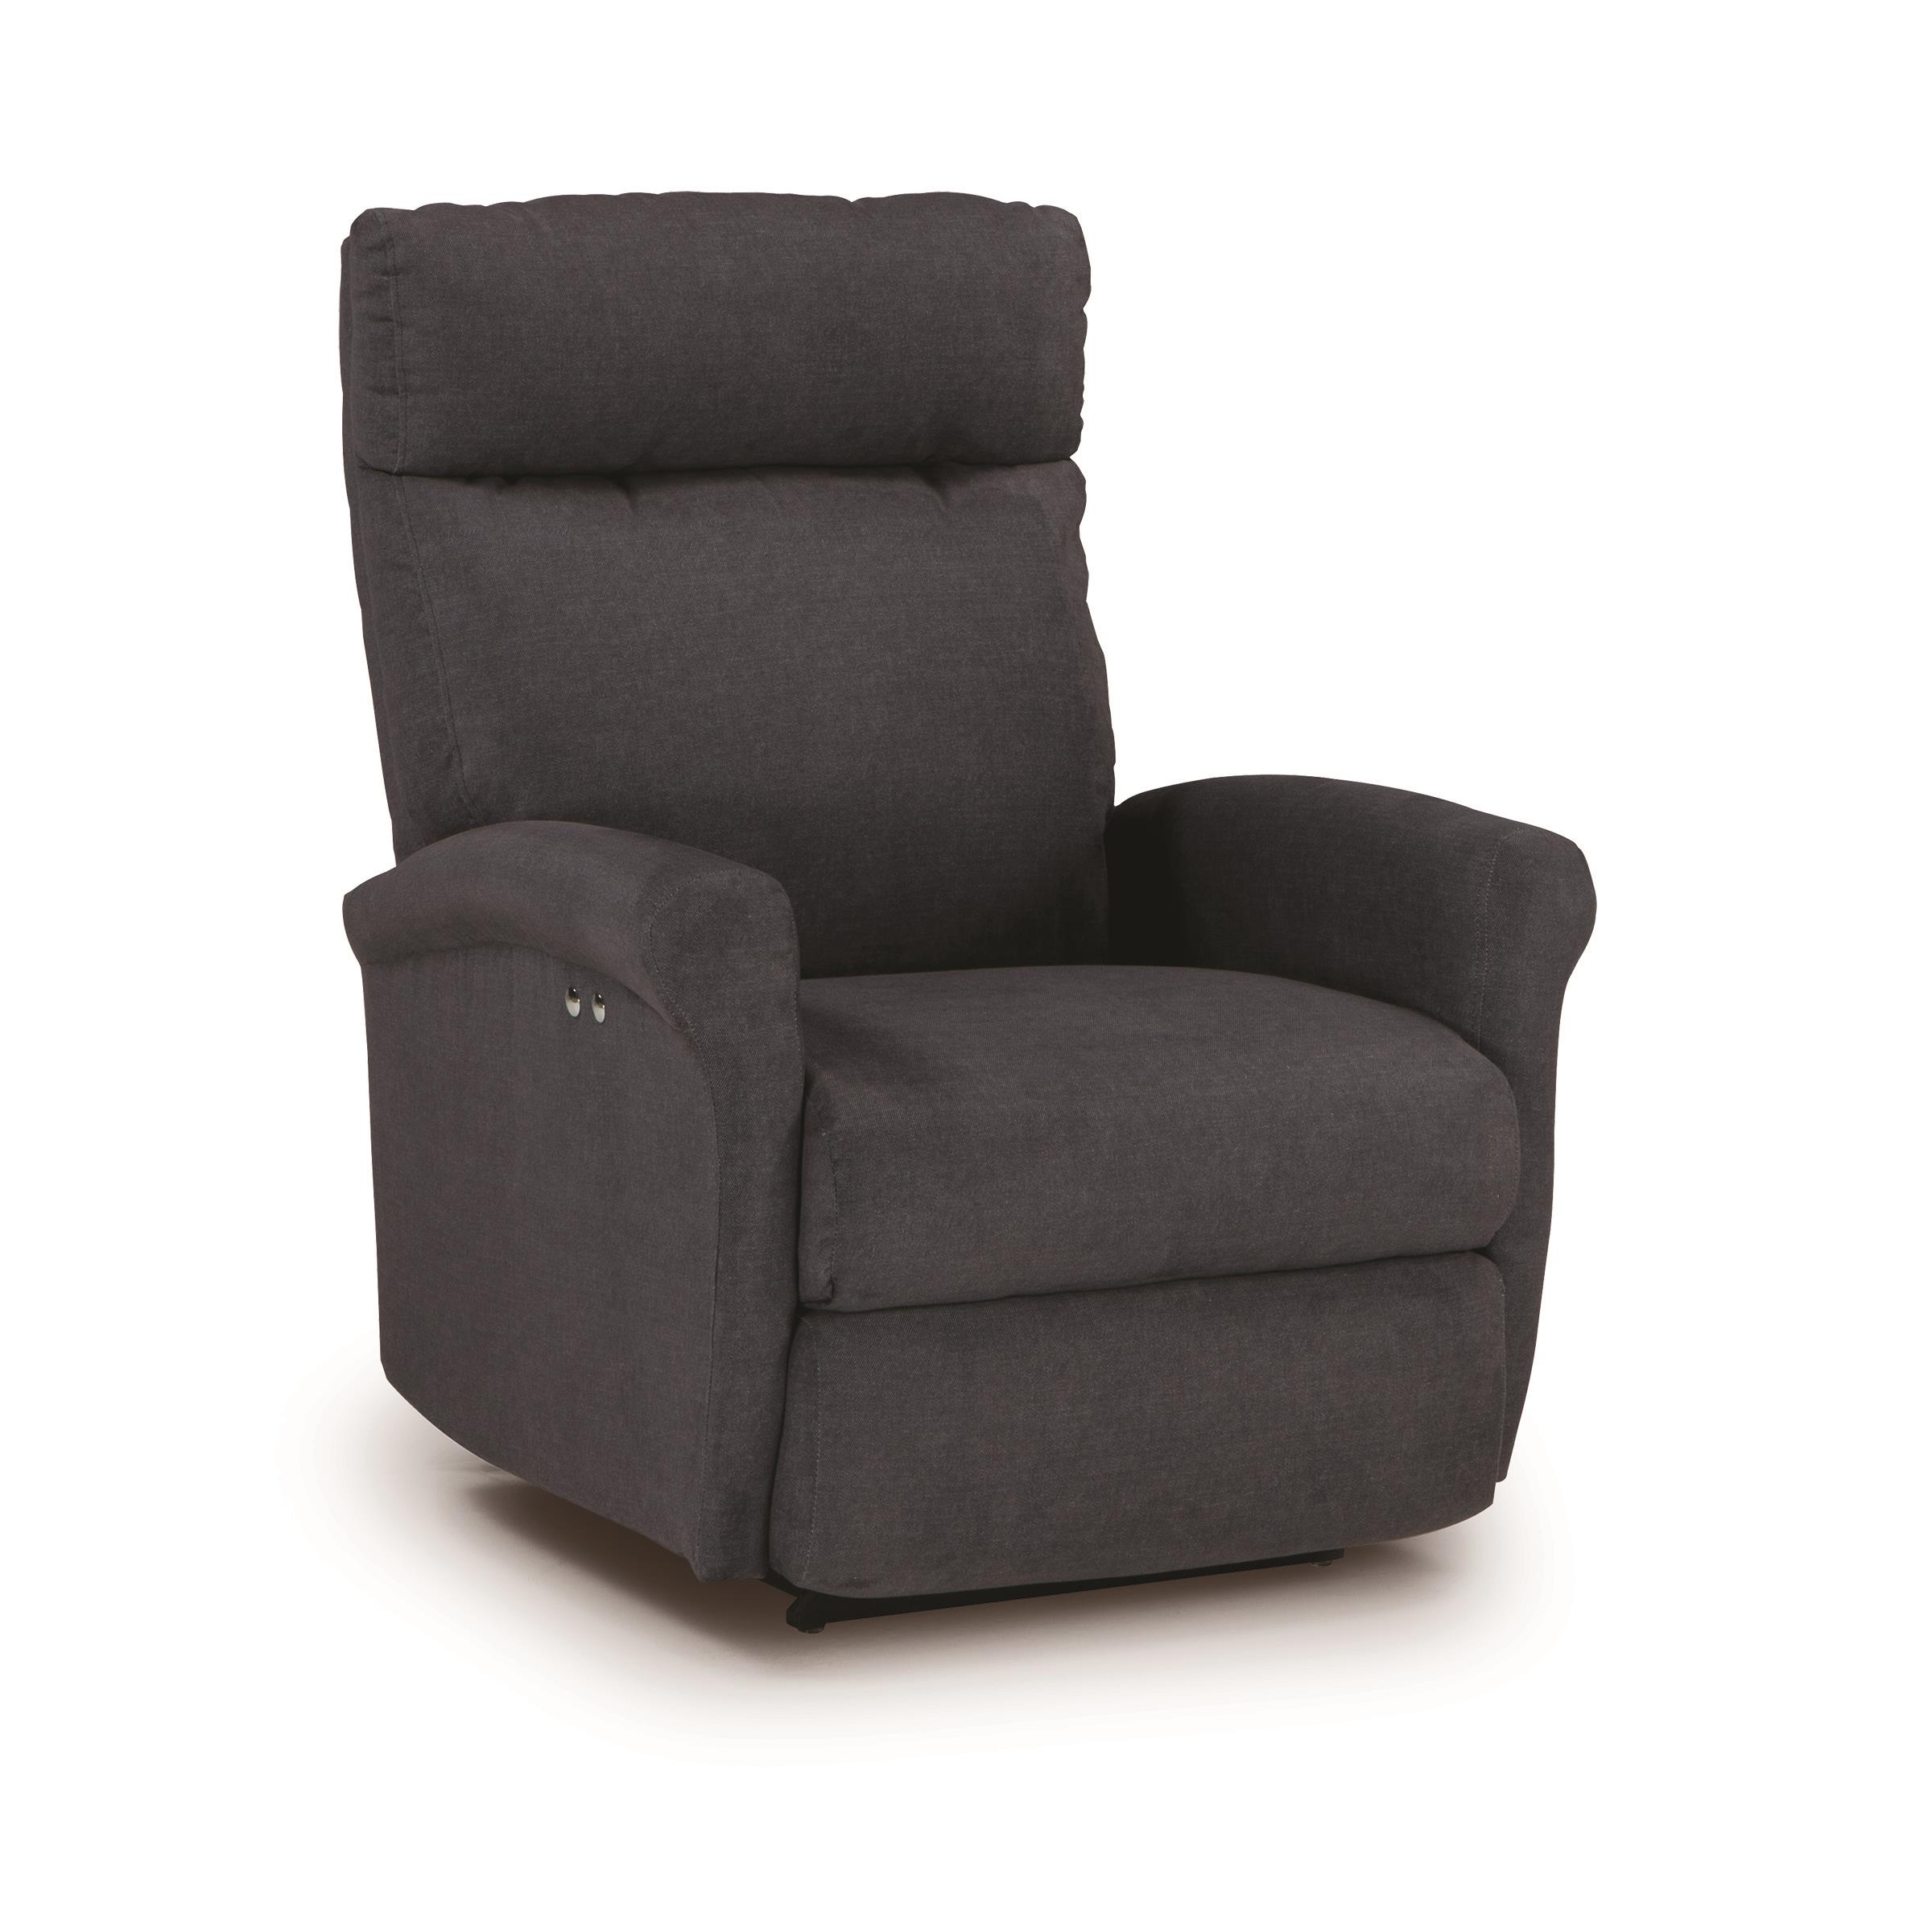 Best Home Furnishings Recliners - Petite Power Space Saver Recliner - Item Number: 1NP04-21472